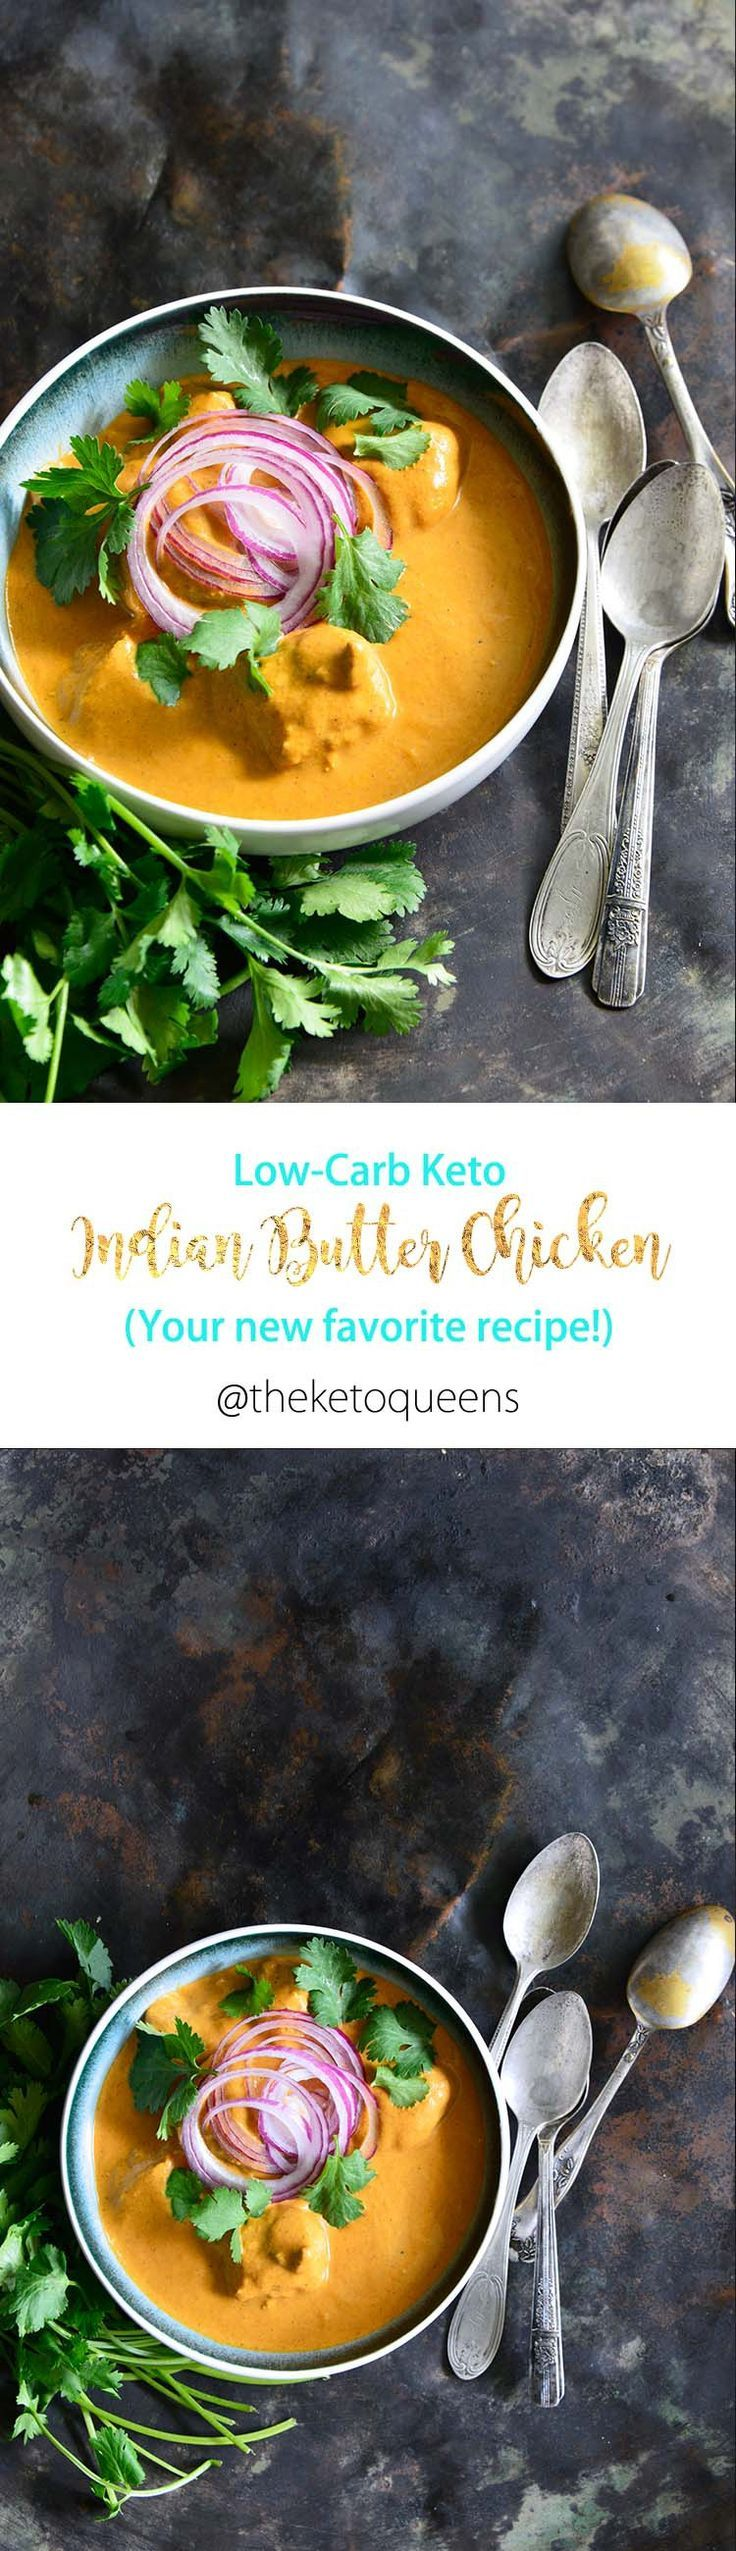 Easy low carb keto indian butter chicken recipe recipe